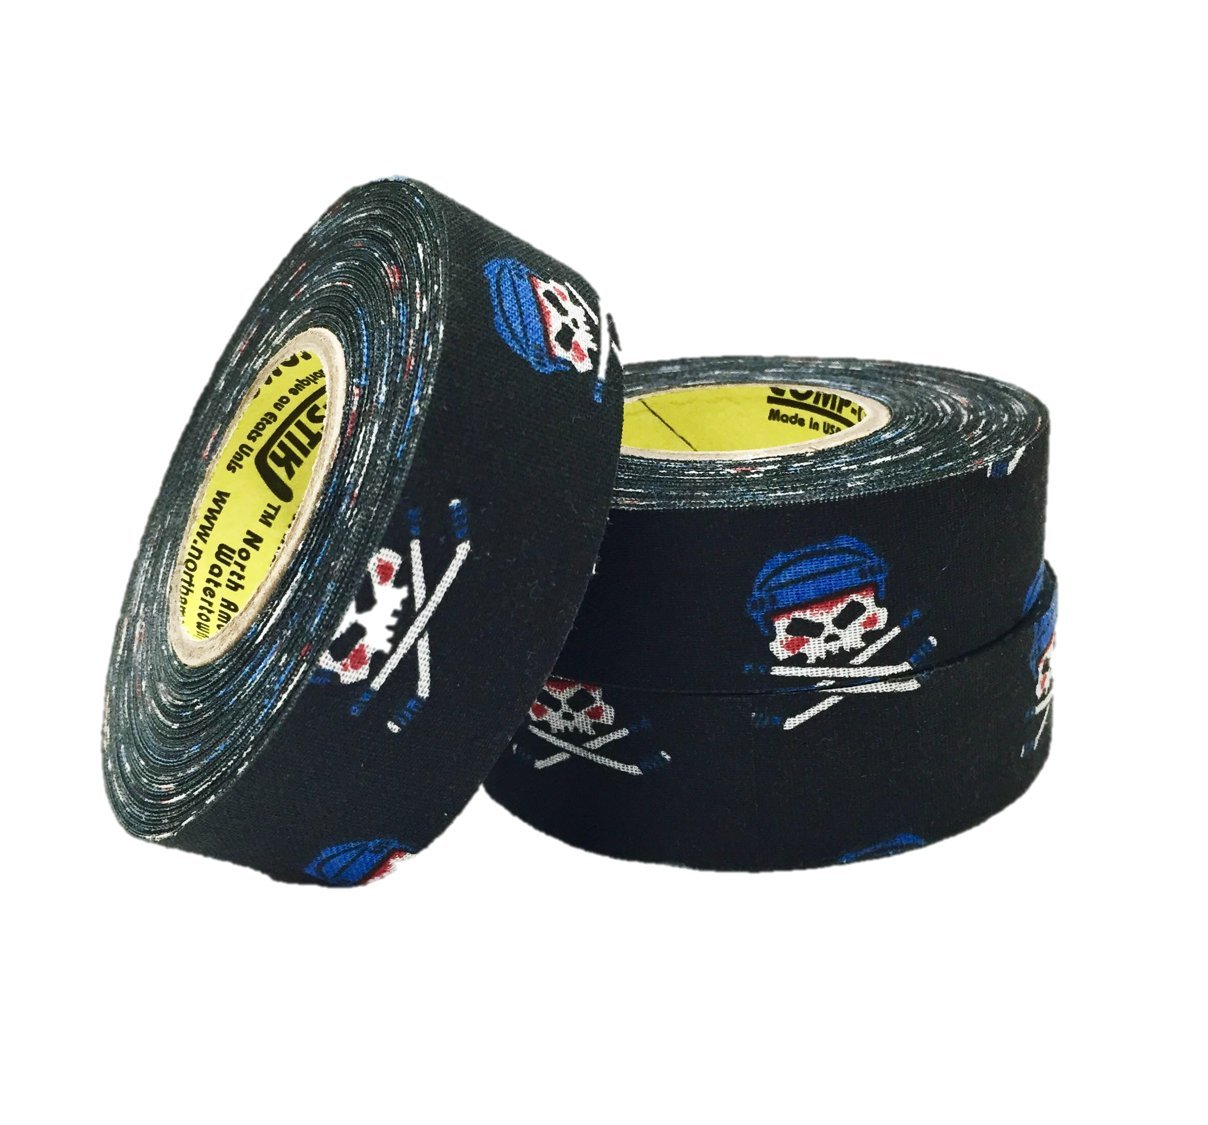 3 Rolls of Comp-O-Stik Skull & Crossbones Hockey Lacrosse Stick Tape ATHLETIC TAPE (3 Pack) Made In The U.S.A. 1'' X 60'